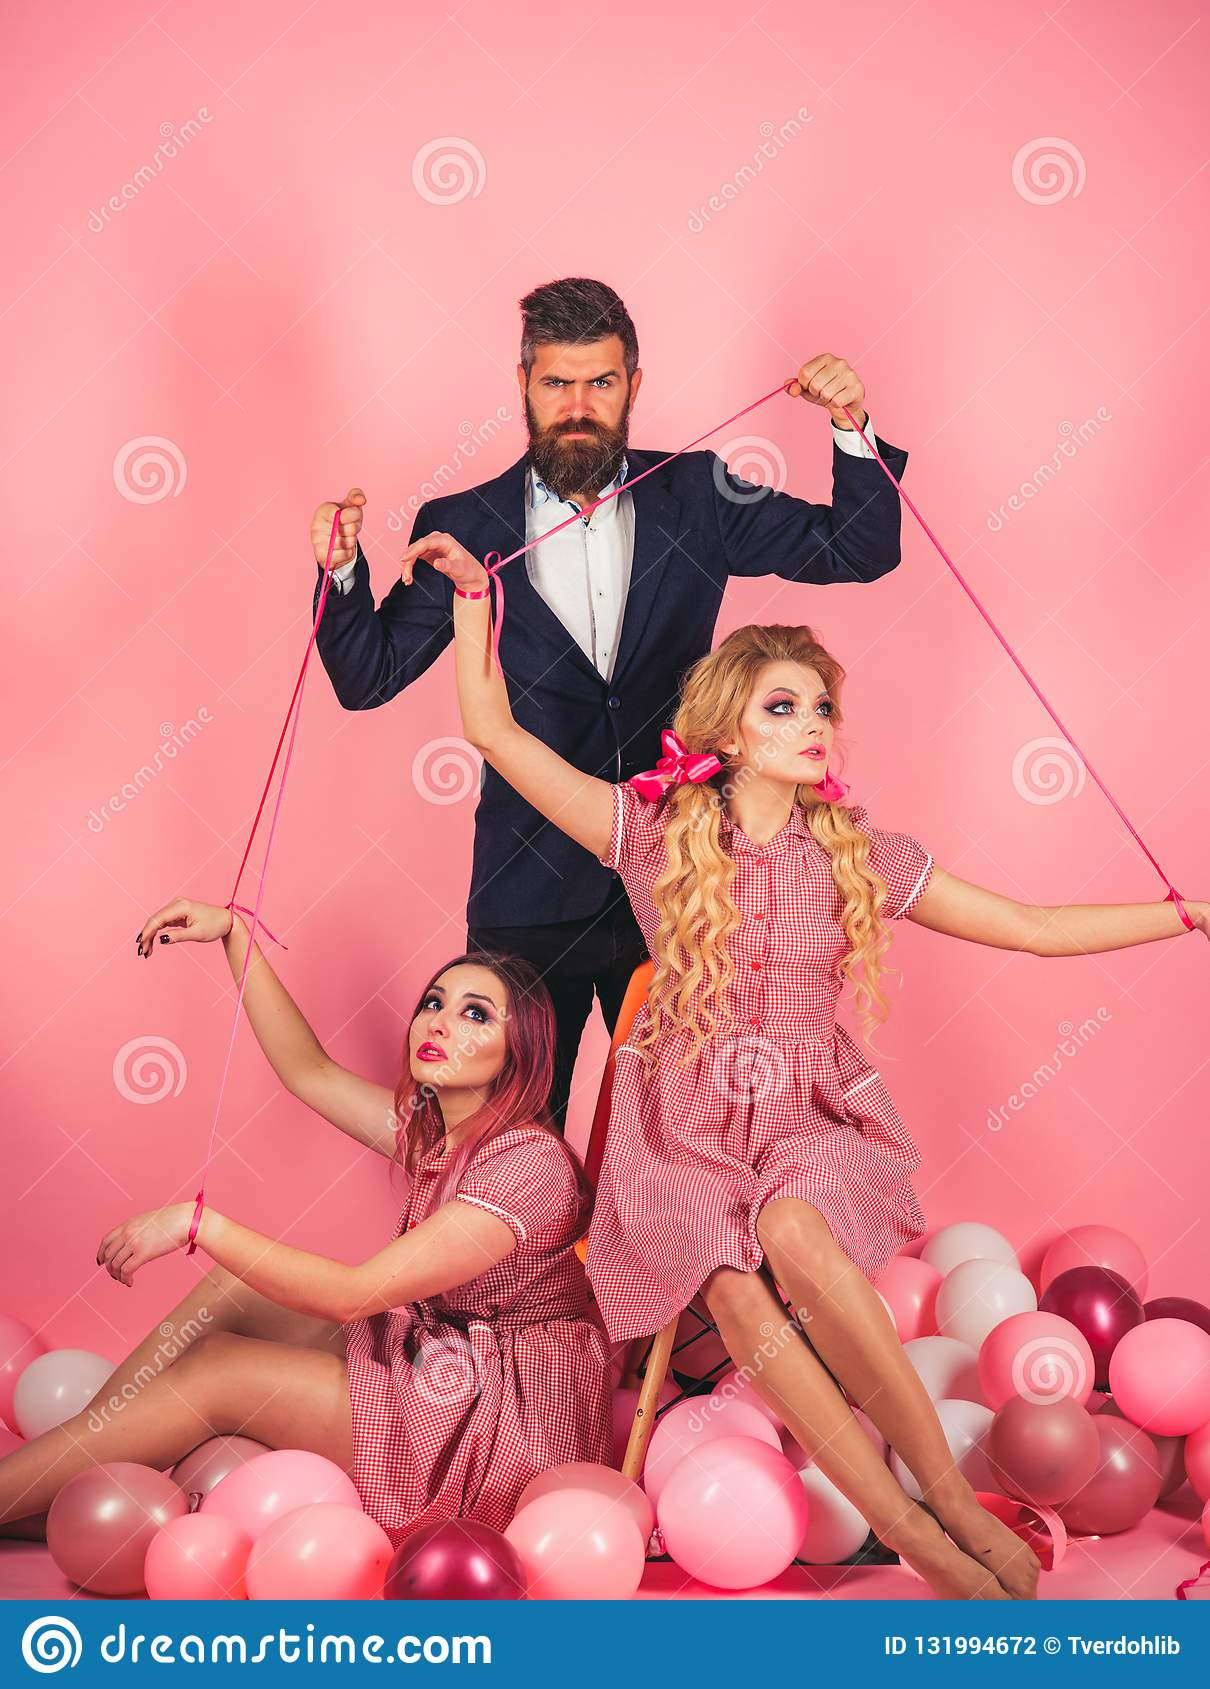 Crazy girls and man on pink. Halloween. Creative idea. Love triangle. retro girls and master in party balloons. vintage